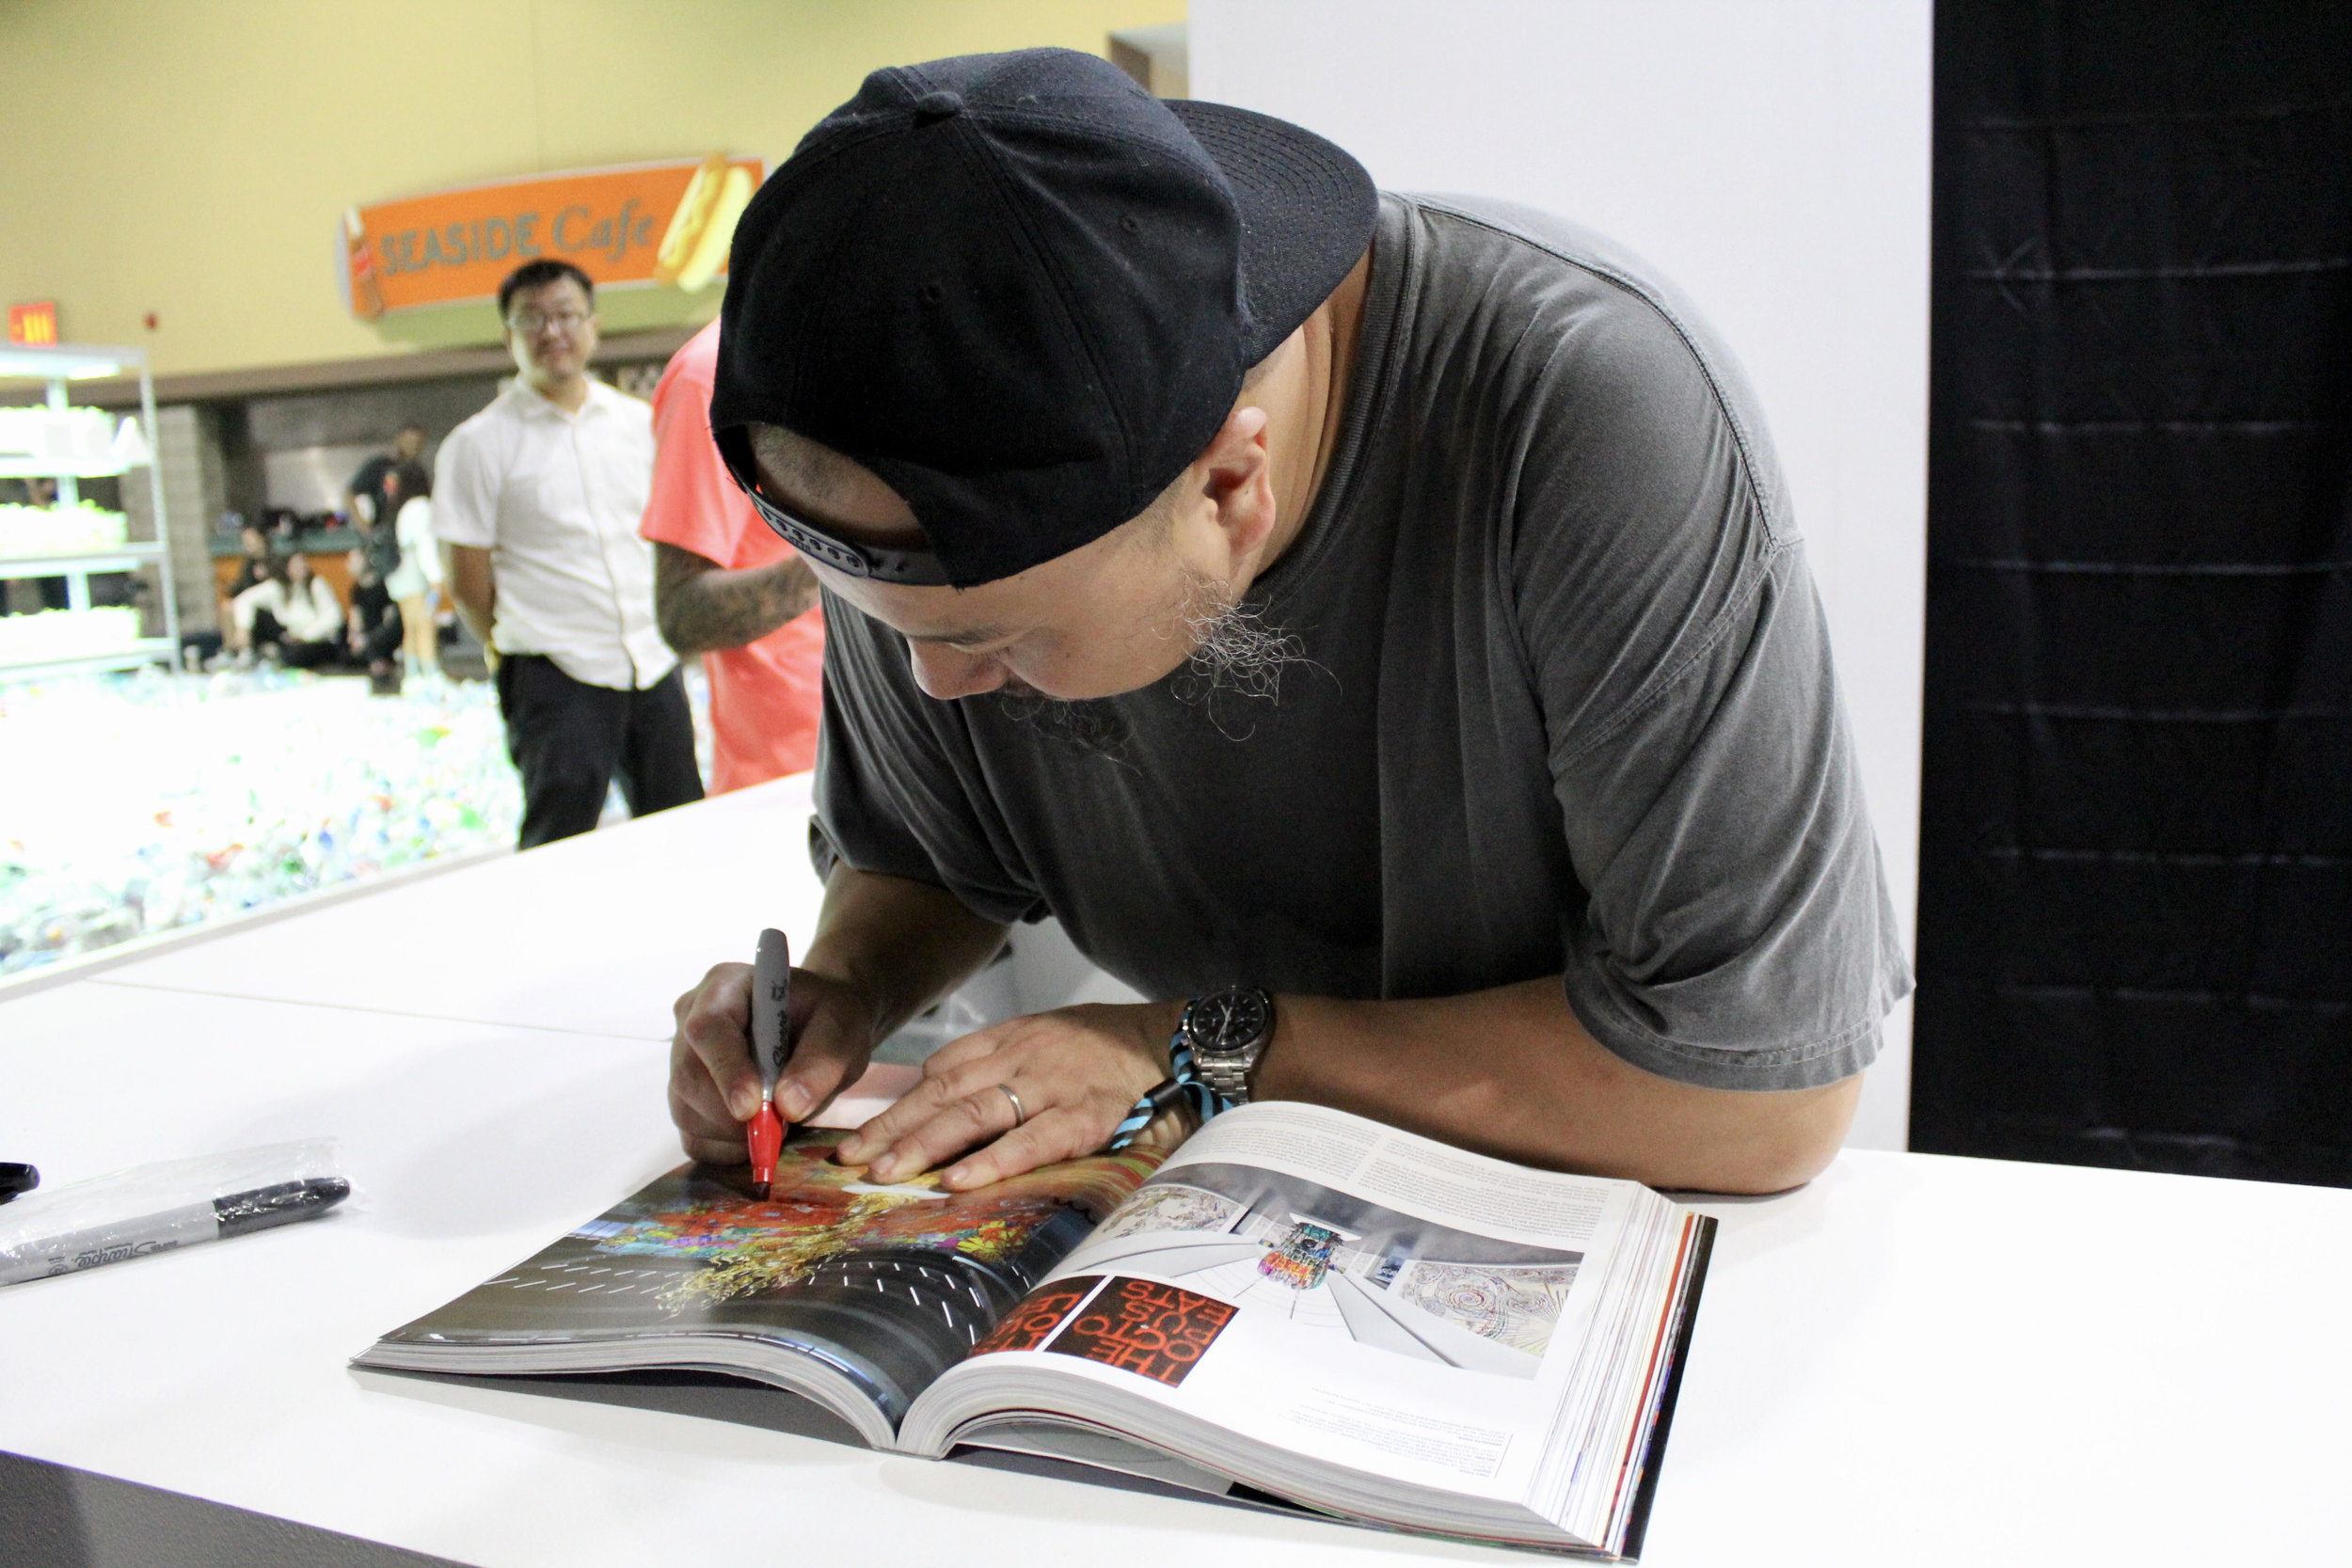 Madsaki signing our Beyond The Streets book at the Kaikai Kiki Gallery booth